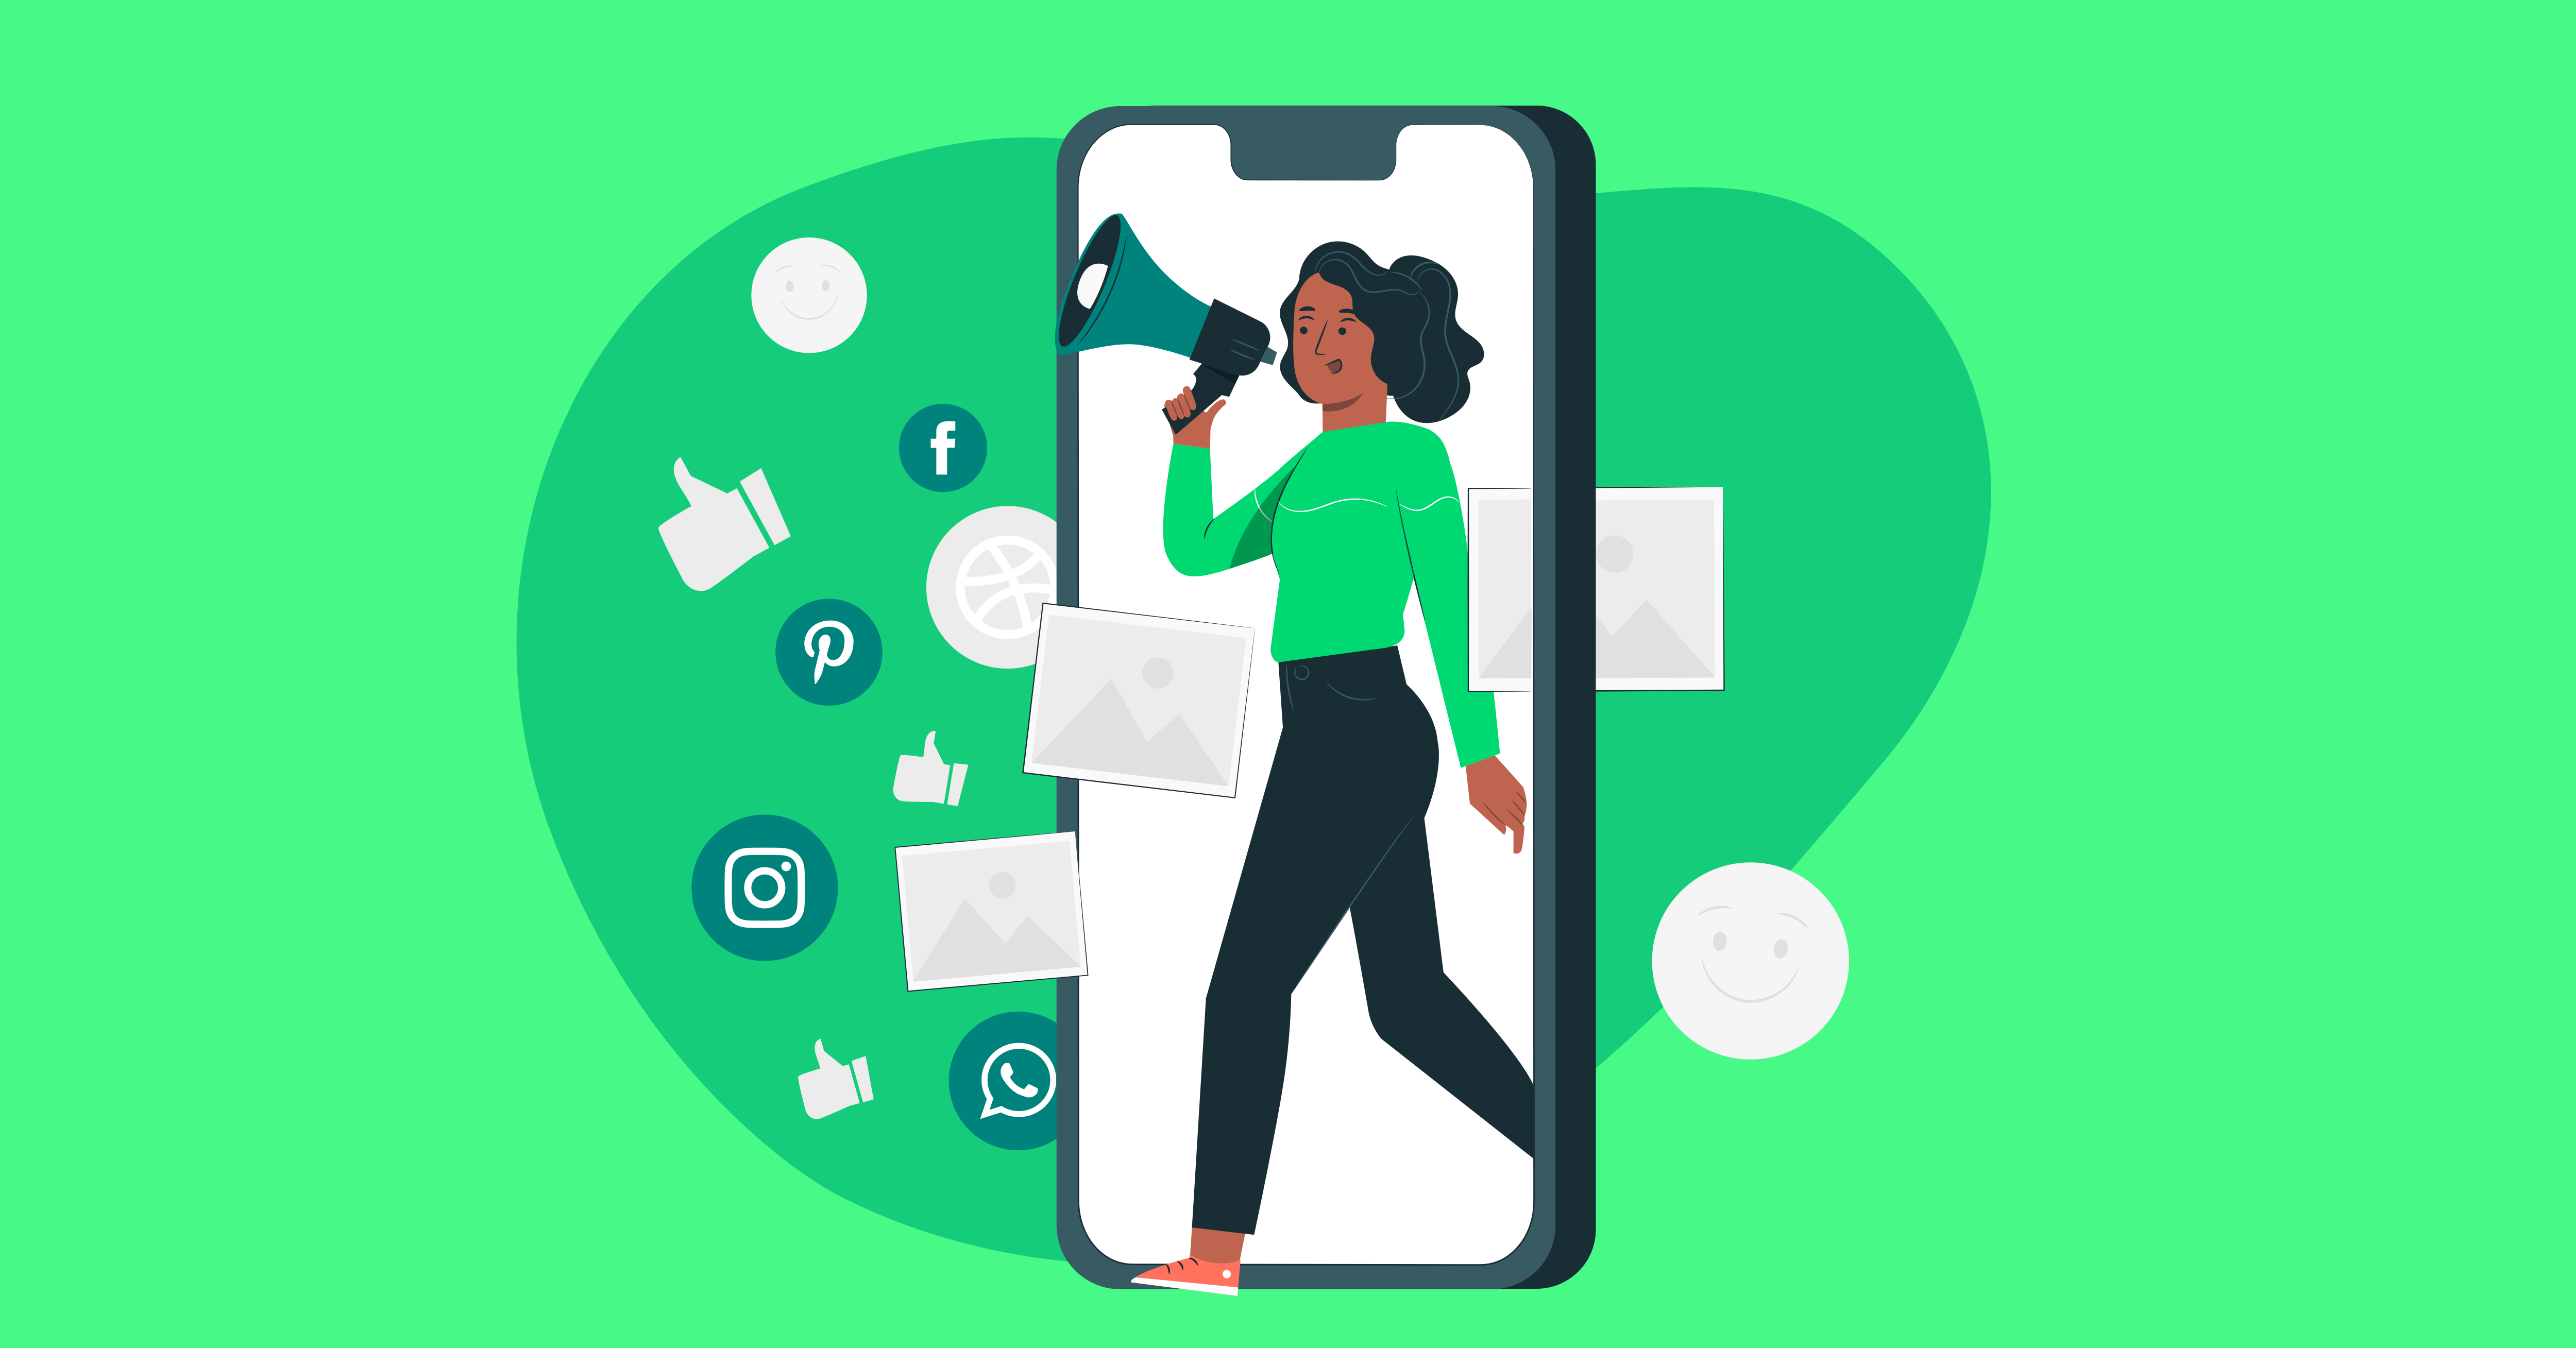 https://spotme.com/wp-content/uploads/2021/02/Hero-How-To-Use-Event-Marketing-to-Drive-Growth-in-2021.png